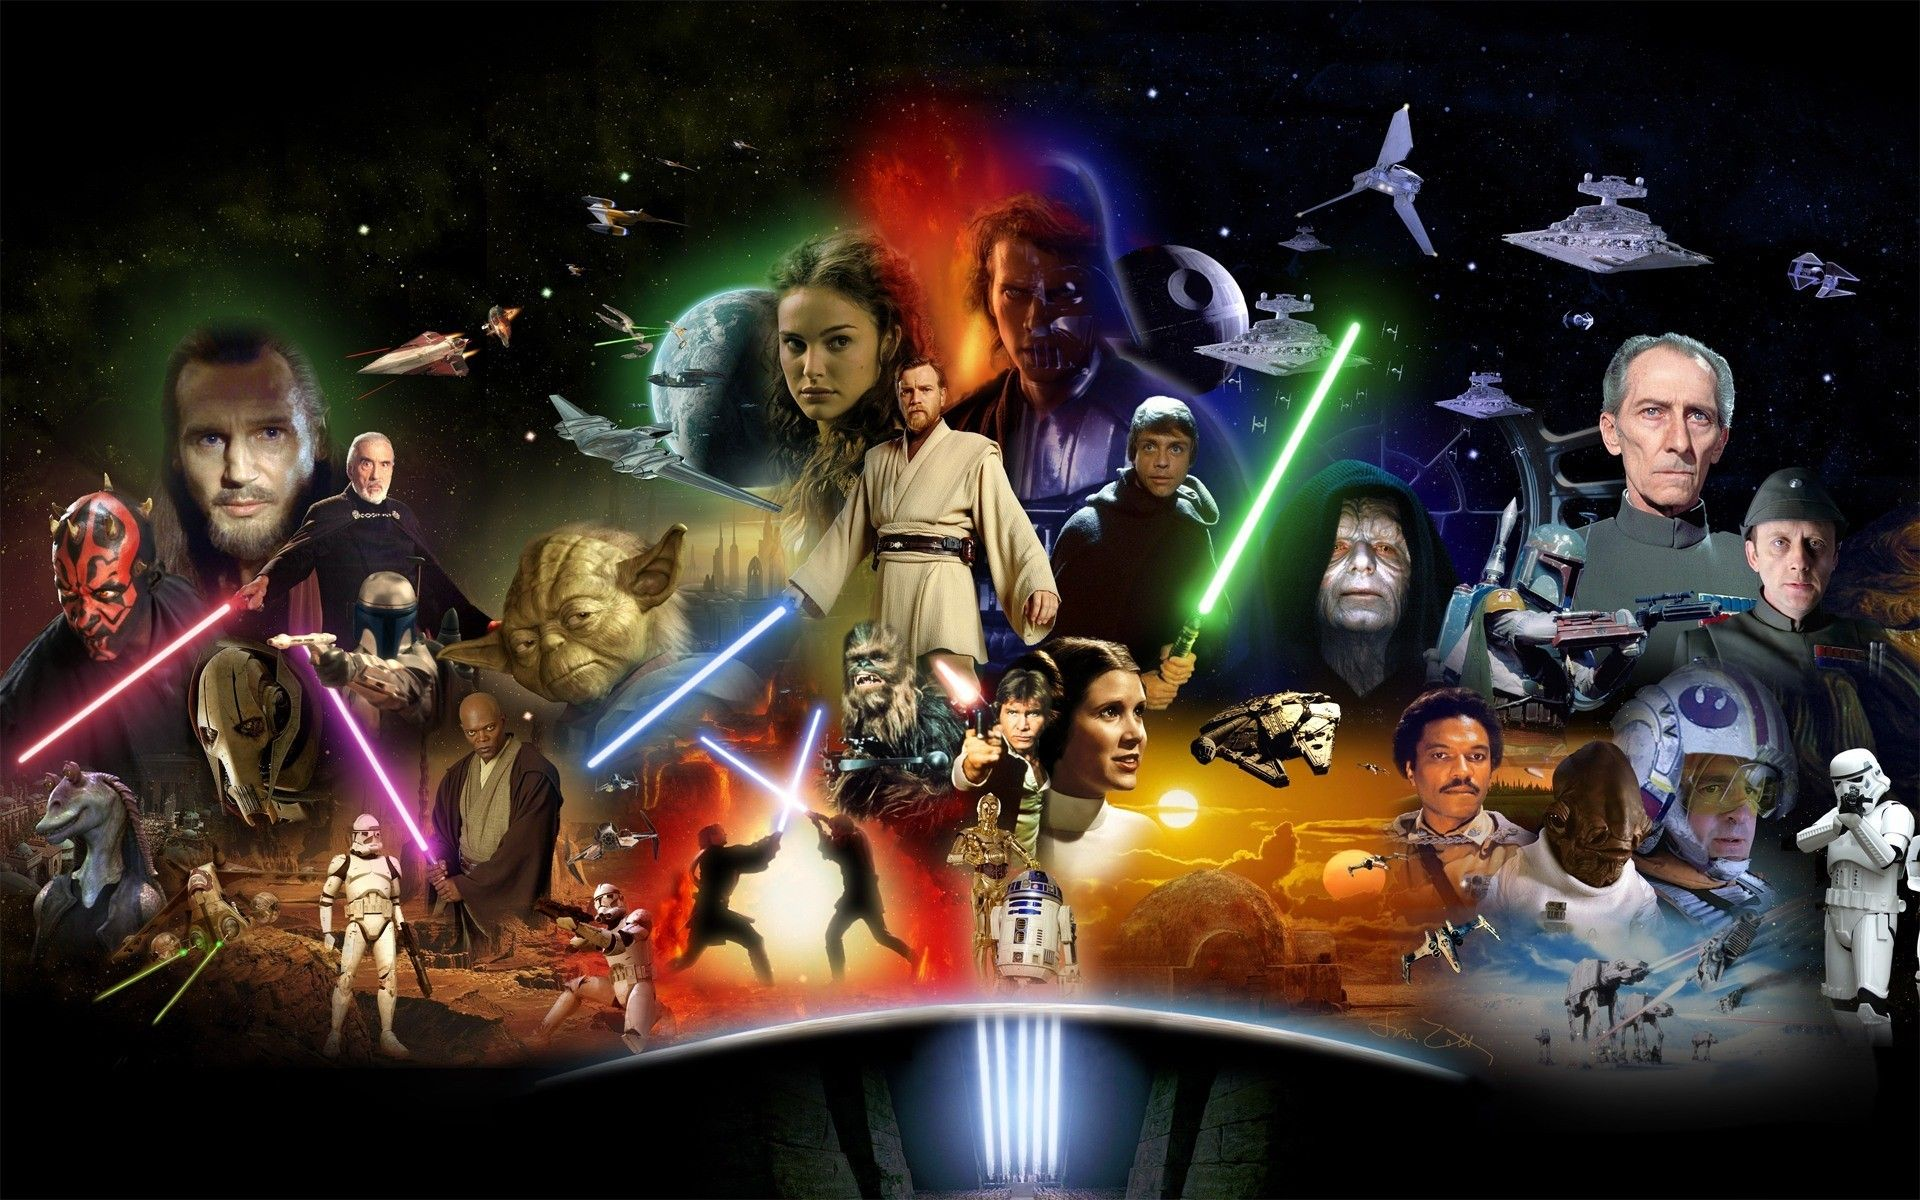 Only 10% Of 'Star Wars' Fans Can Guess Which Character Said Which Phrase